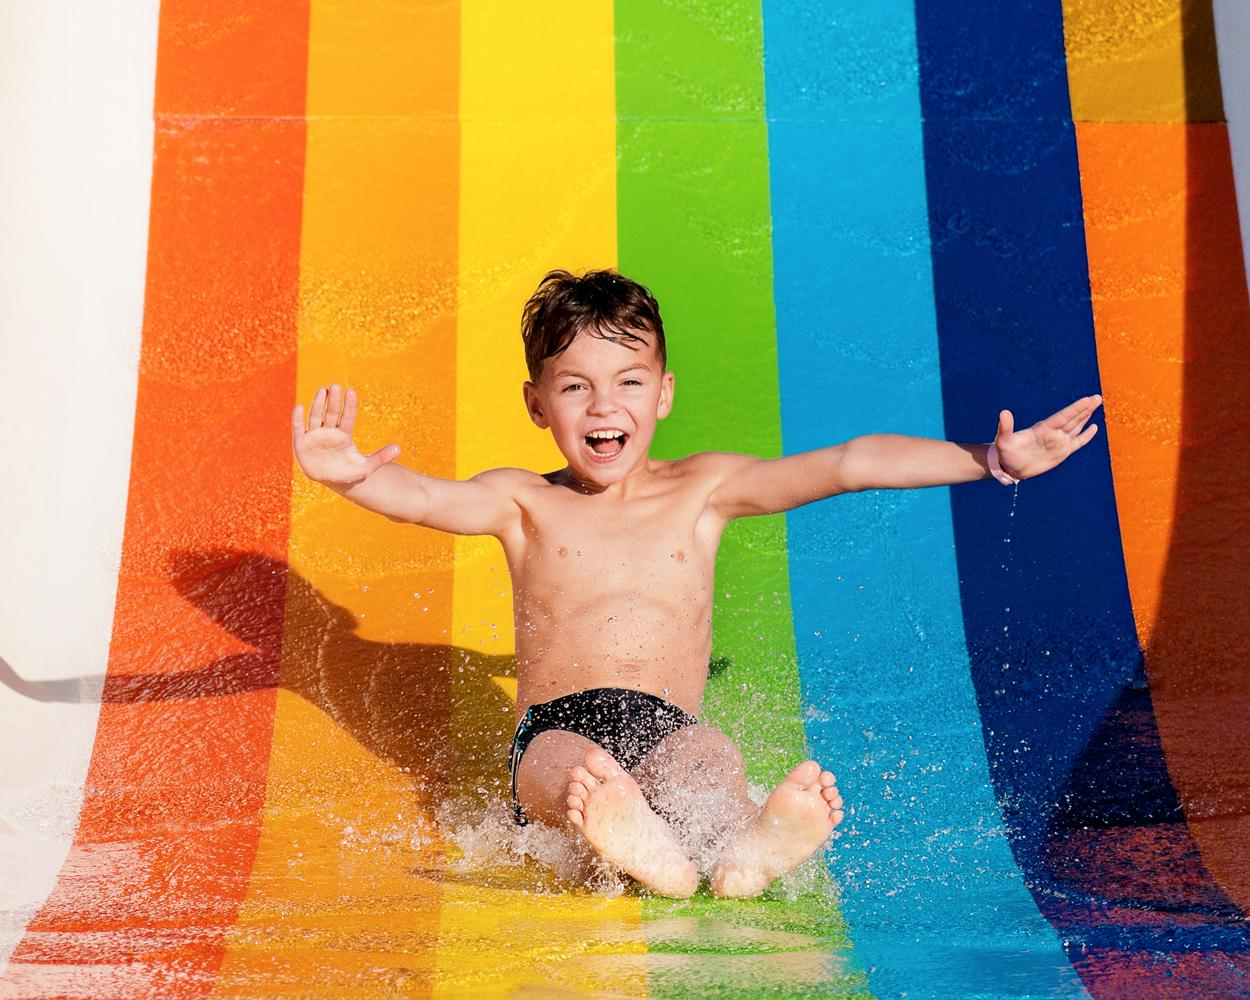 TÜV SÜD  is one of the leading suppliers of quality, safety and sustainability solutions for amusement and water parks